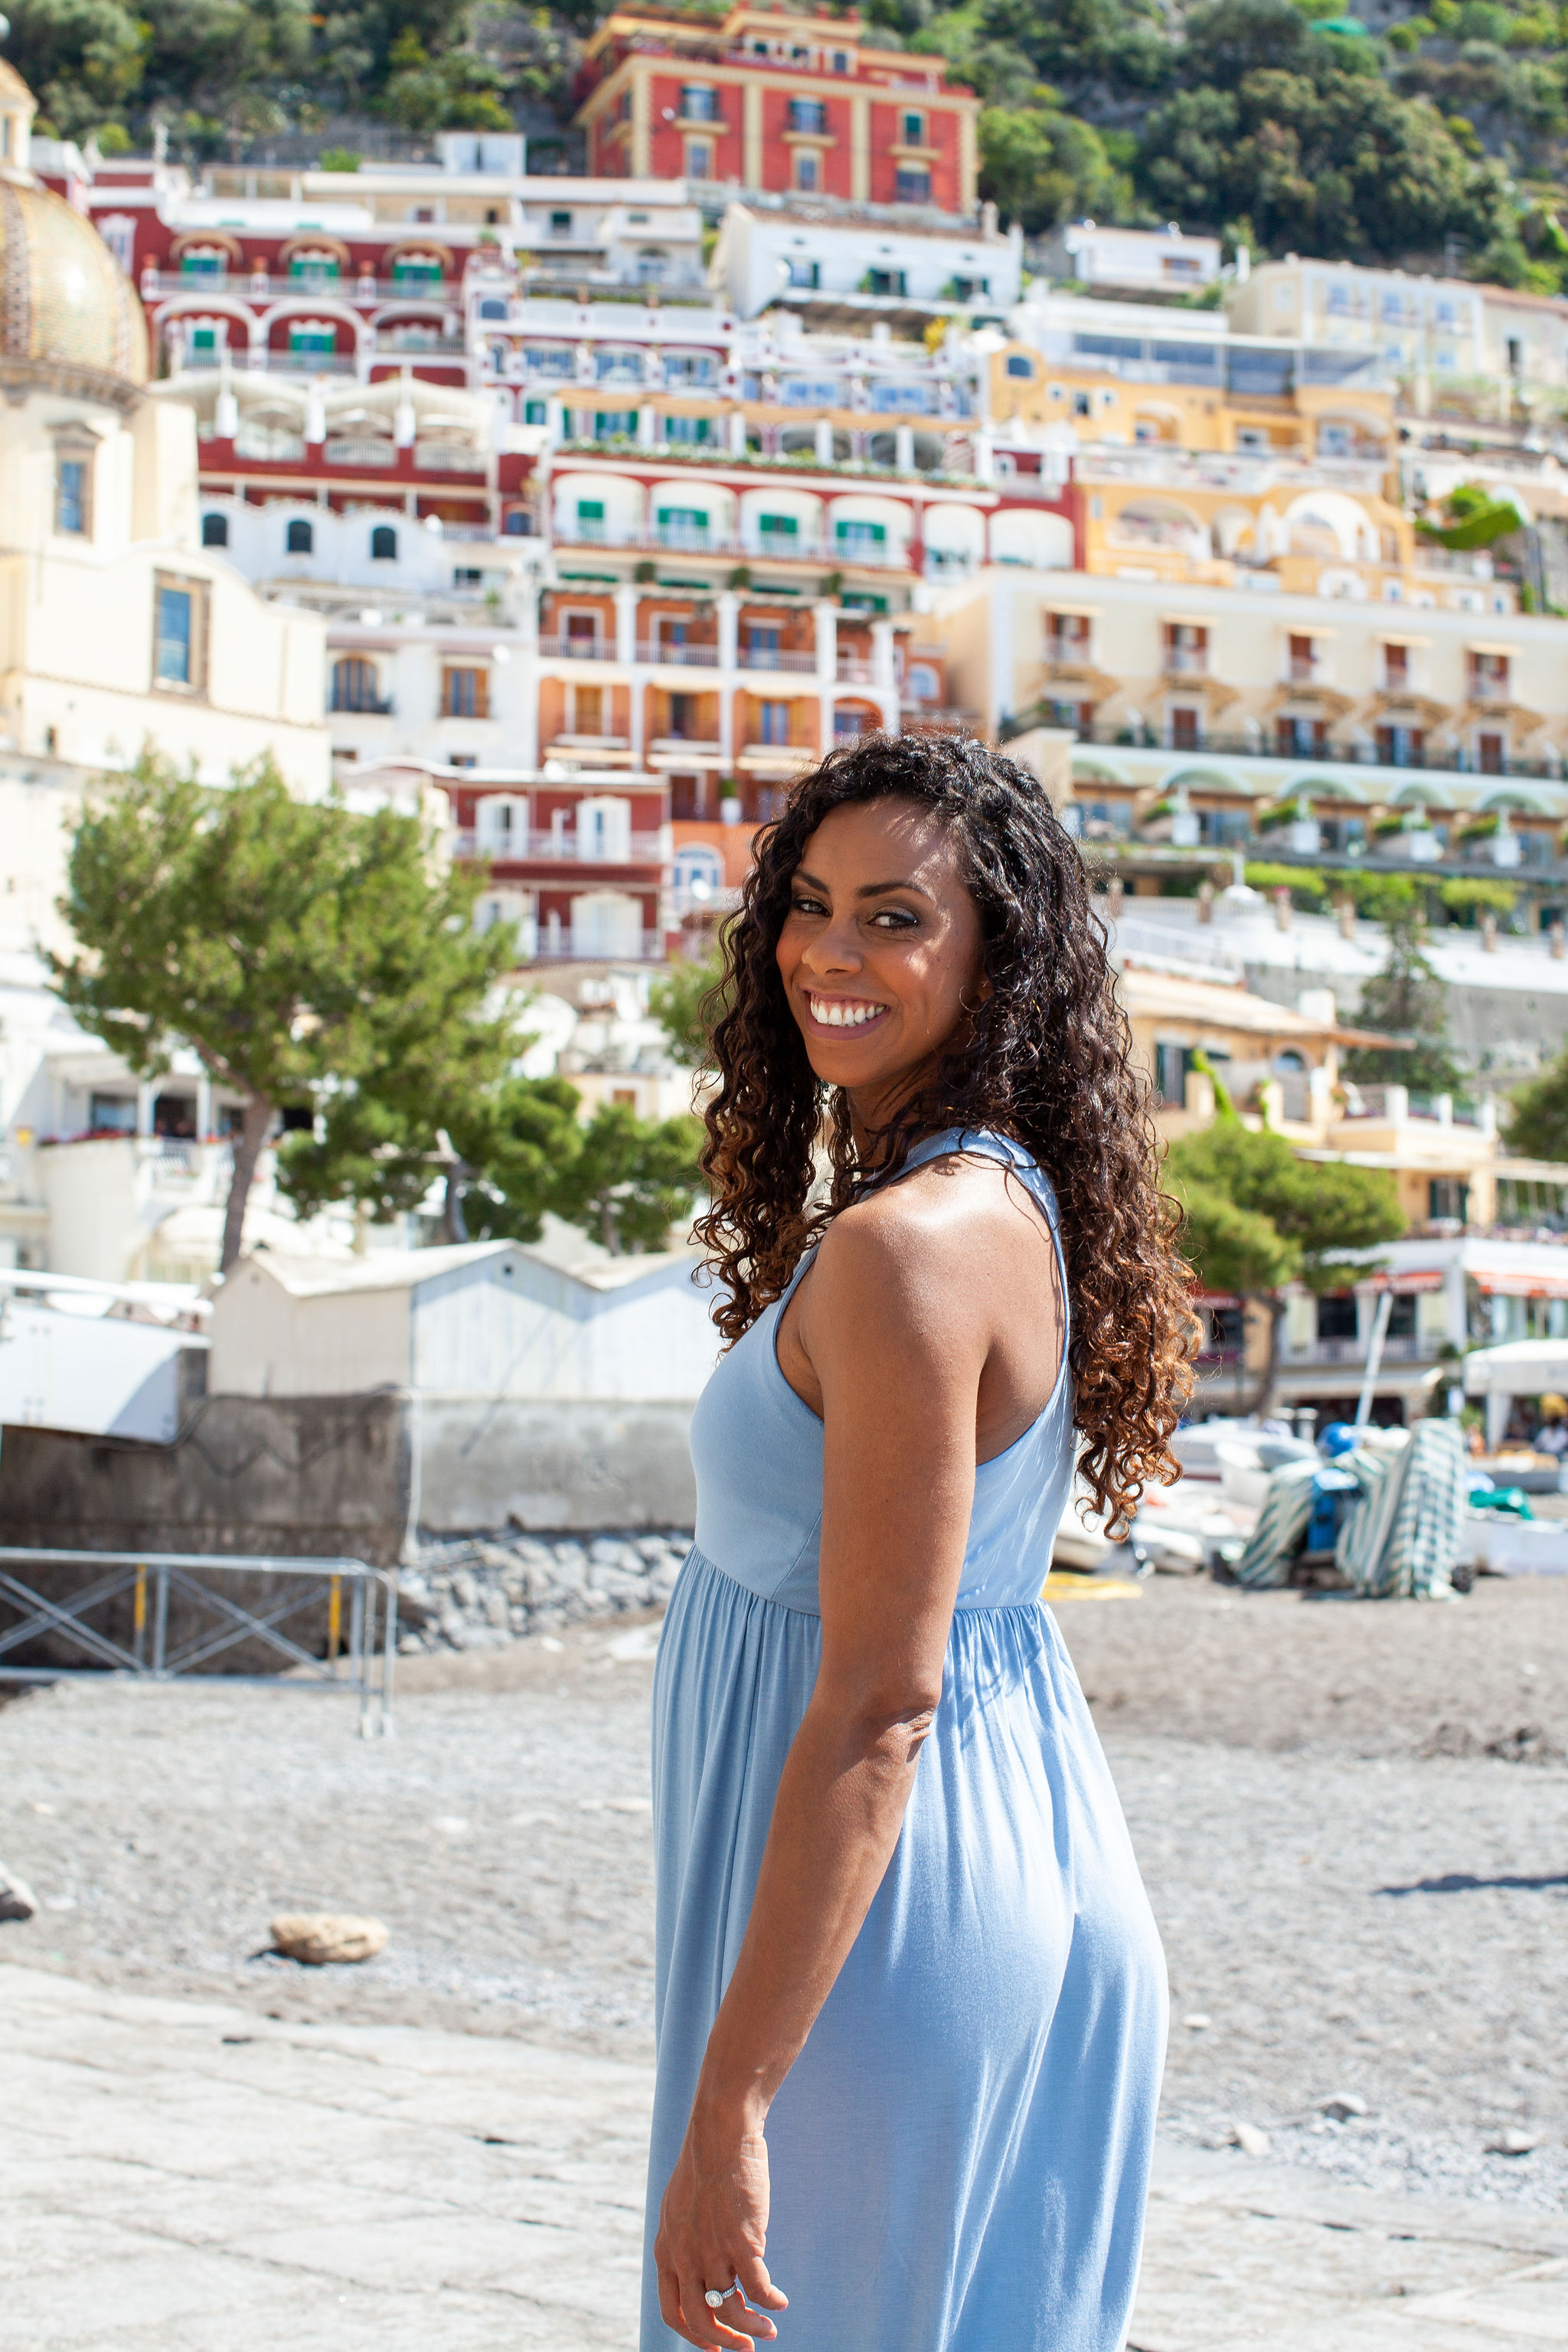 How to plan a vacation photoshoot in Italy